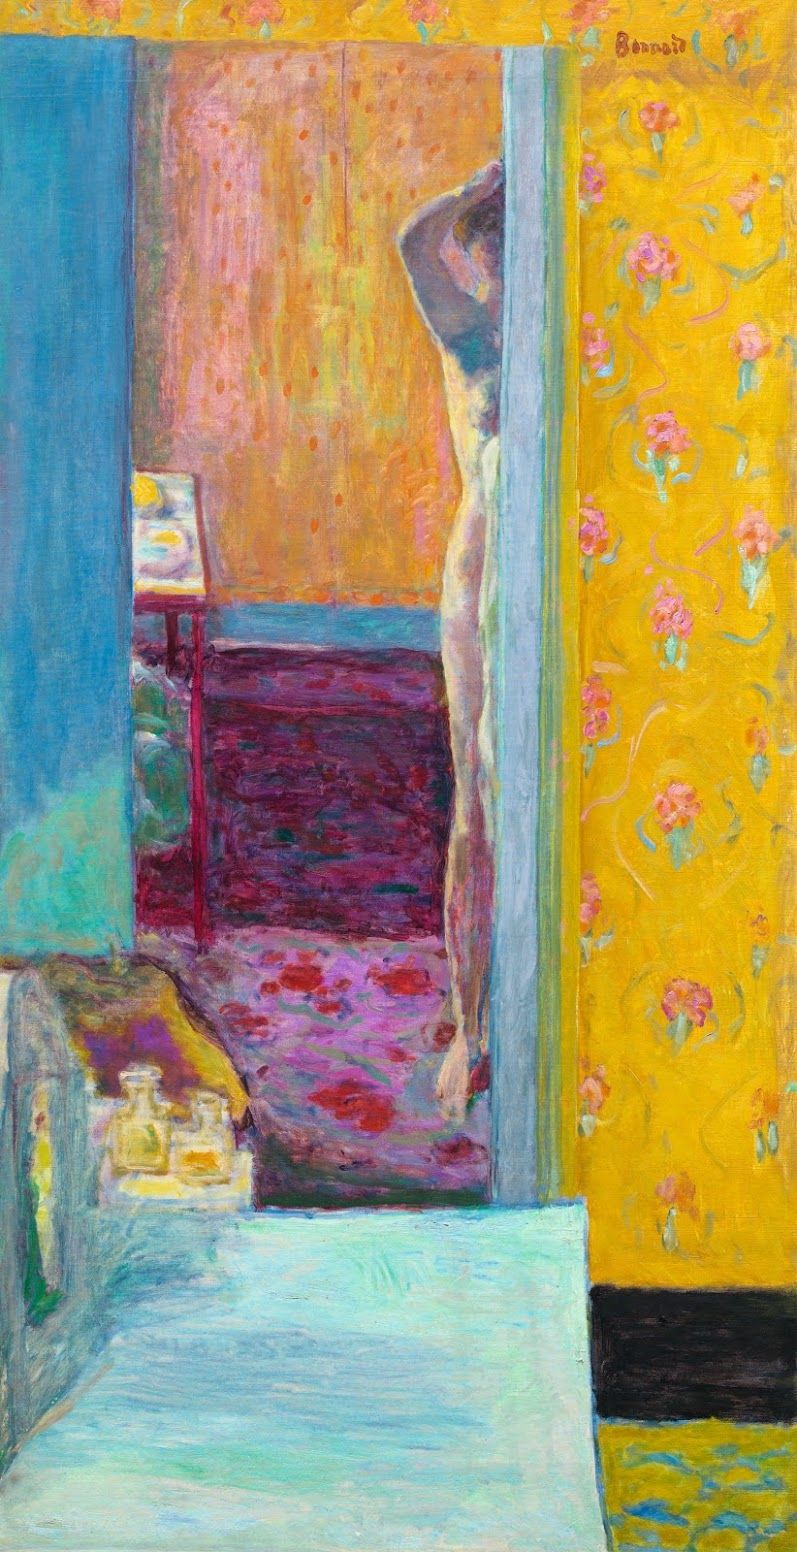 Painting by French artist Pierre Bonnard (1867 - 1947)